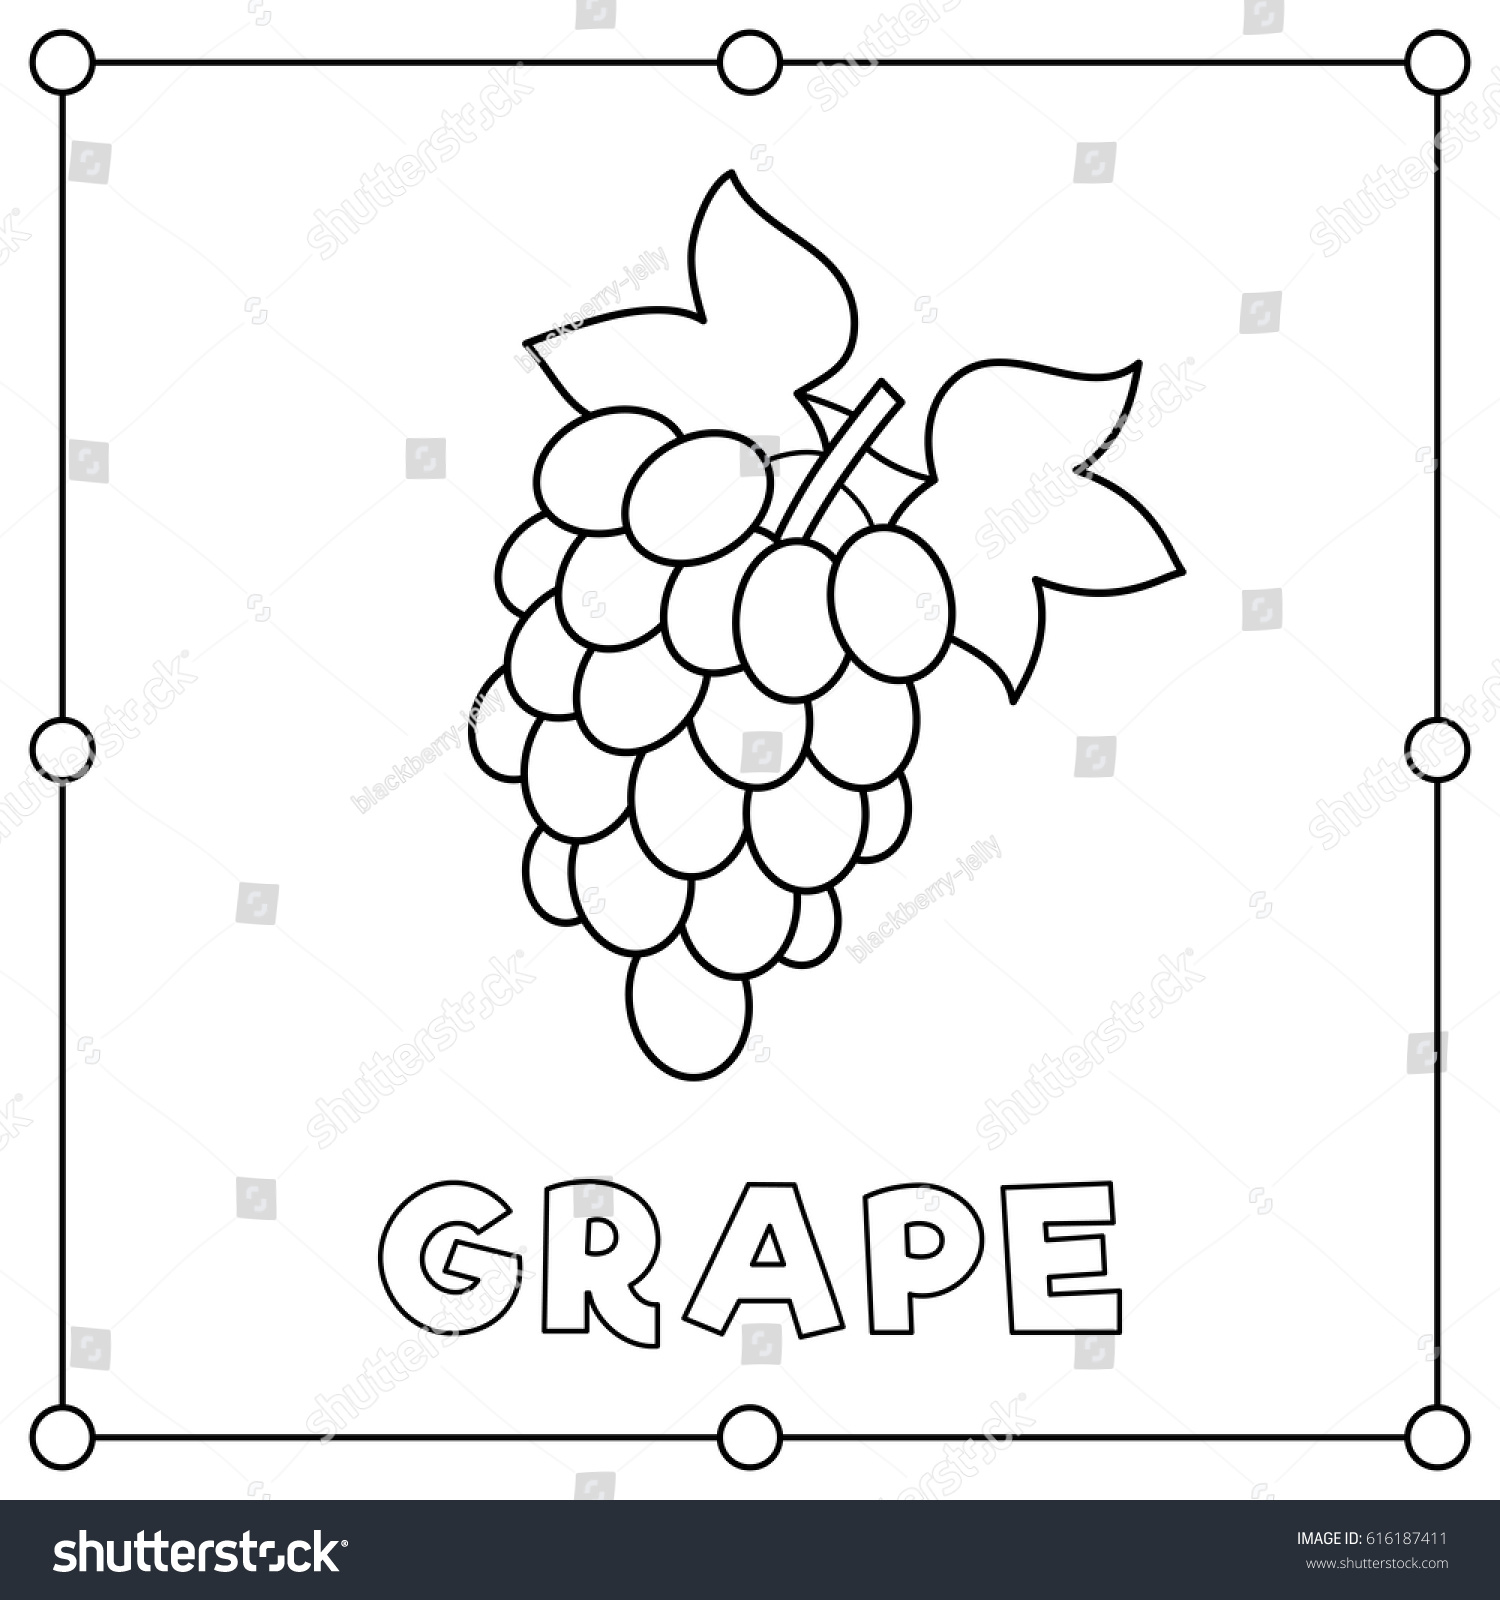 Grape Coloring Page grapes coloring pages to print grape coloring ...